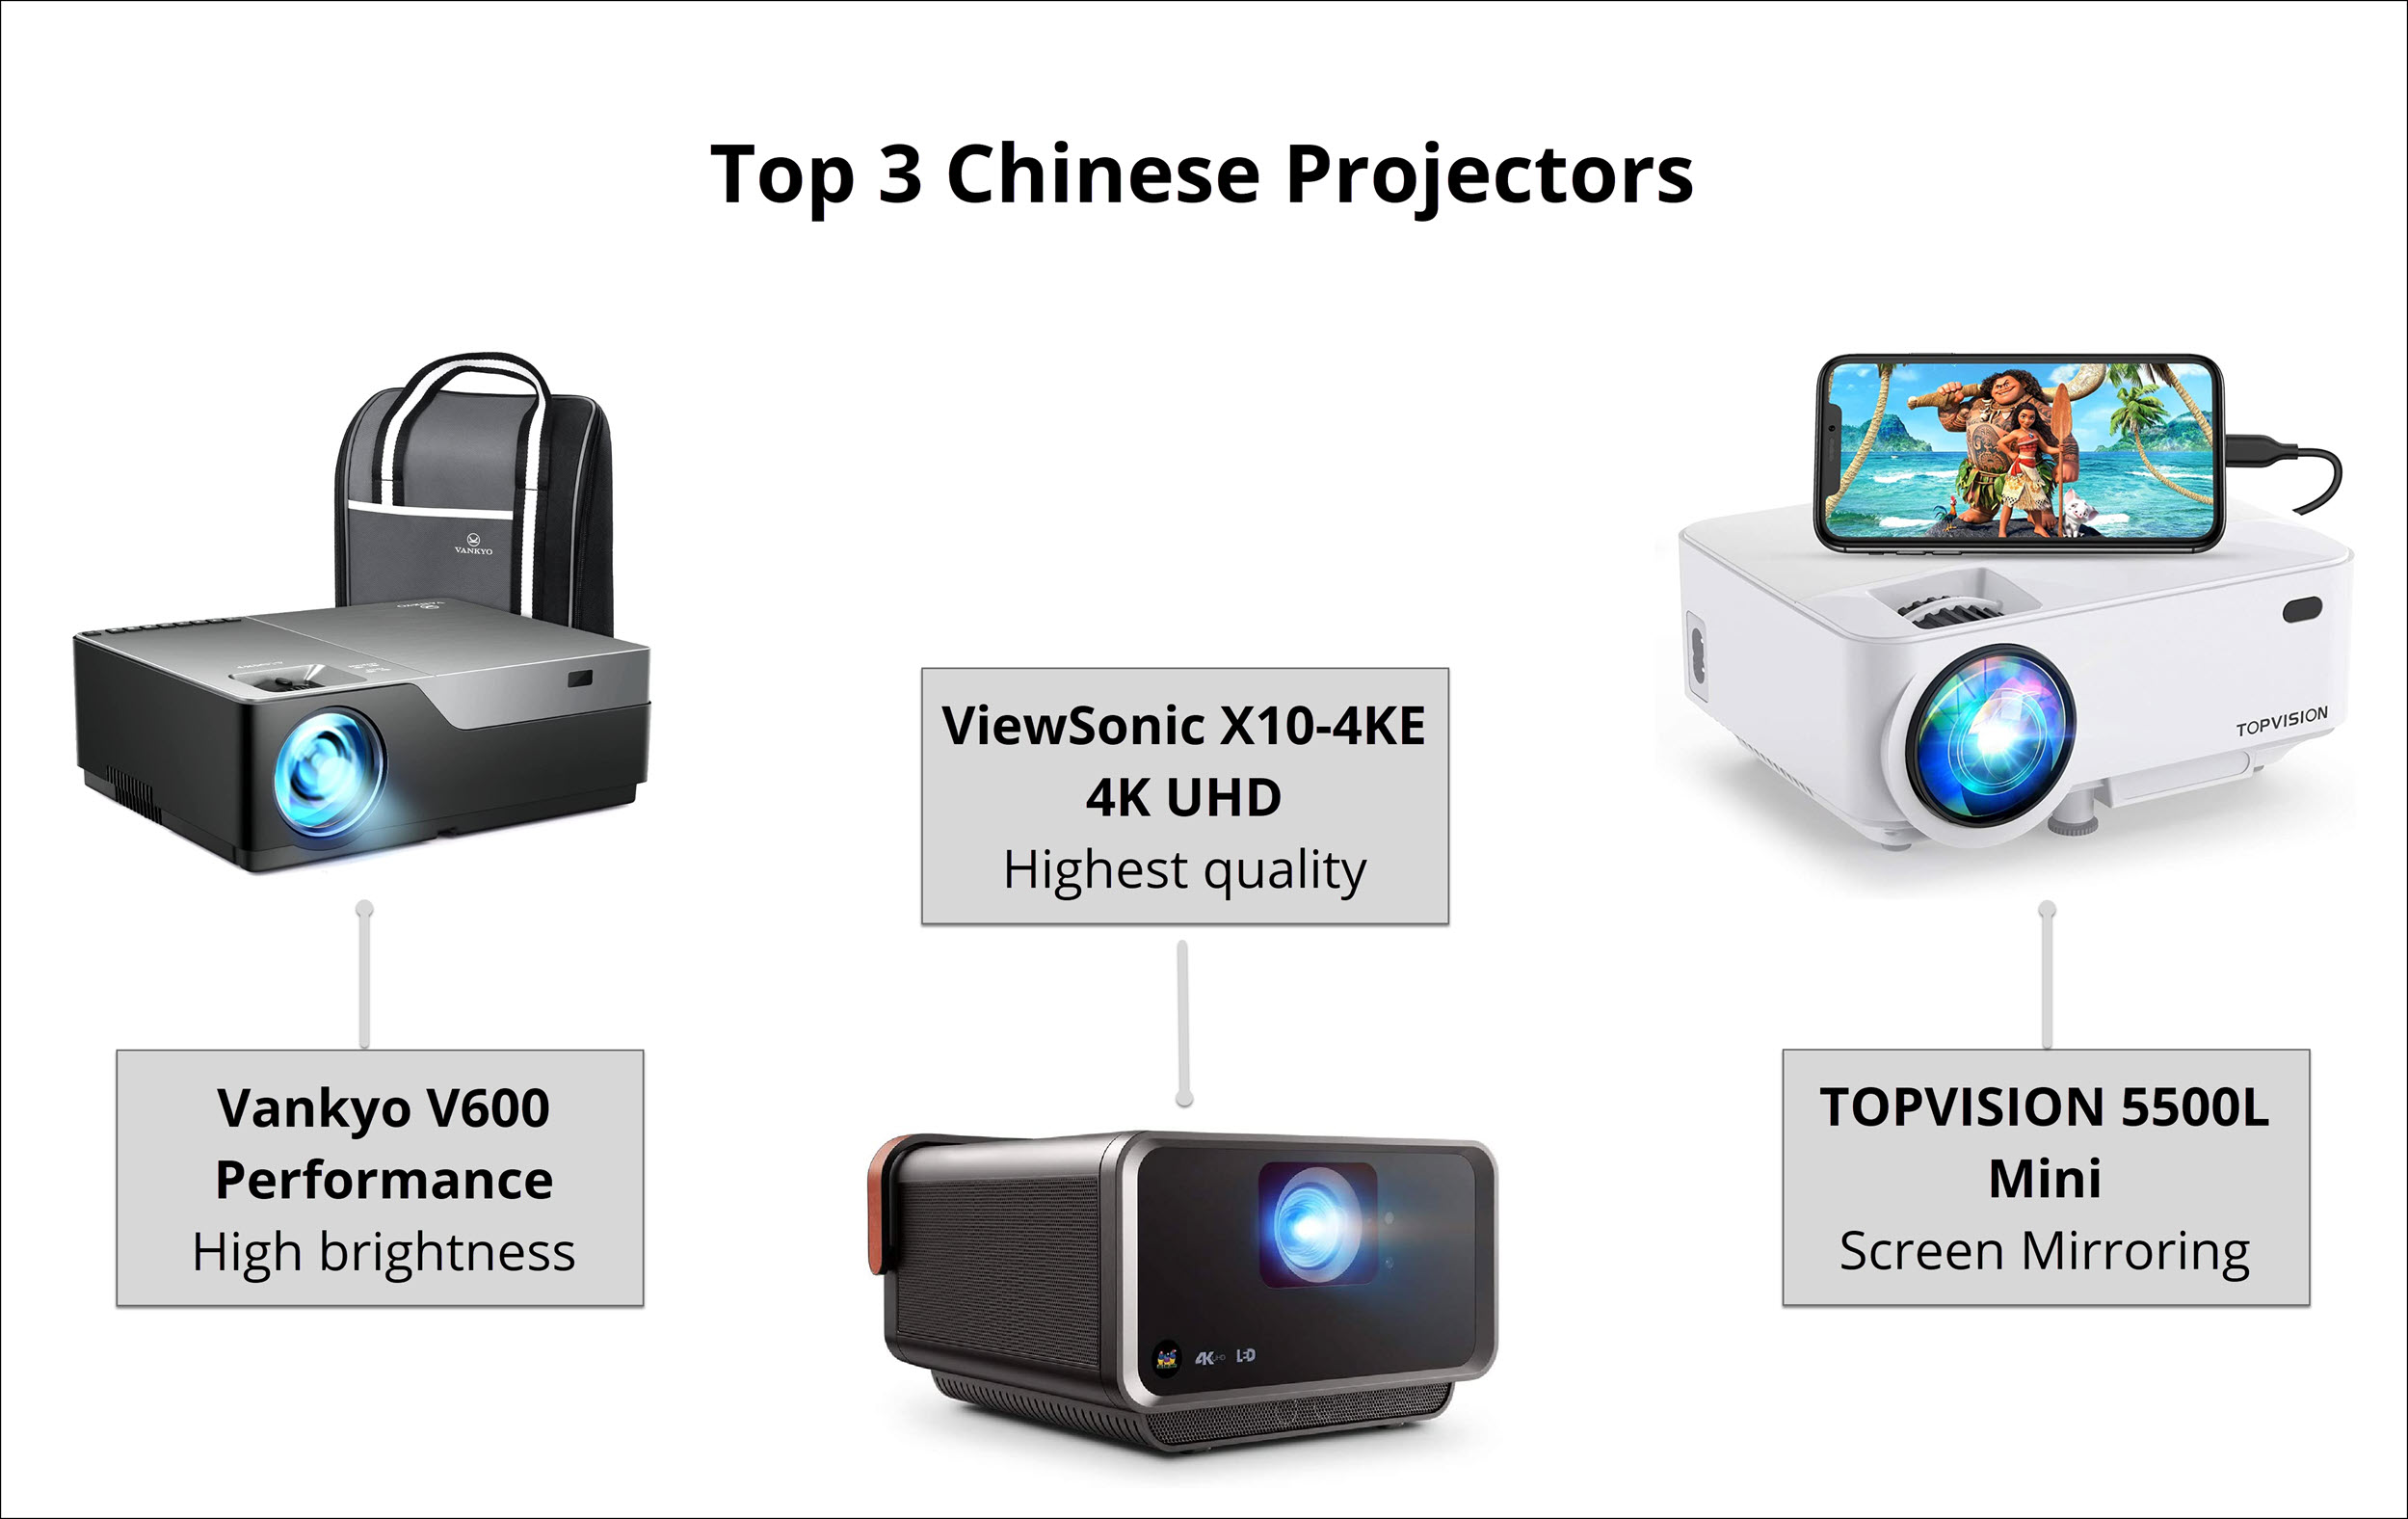 Top 3 Chinese Projectors